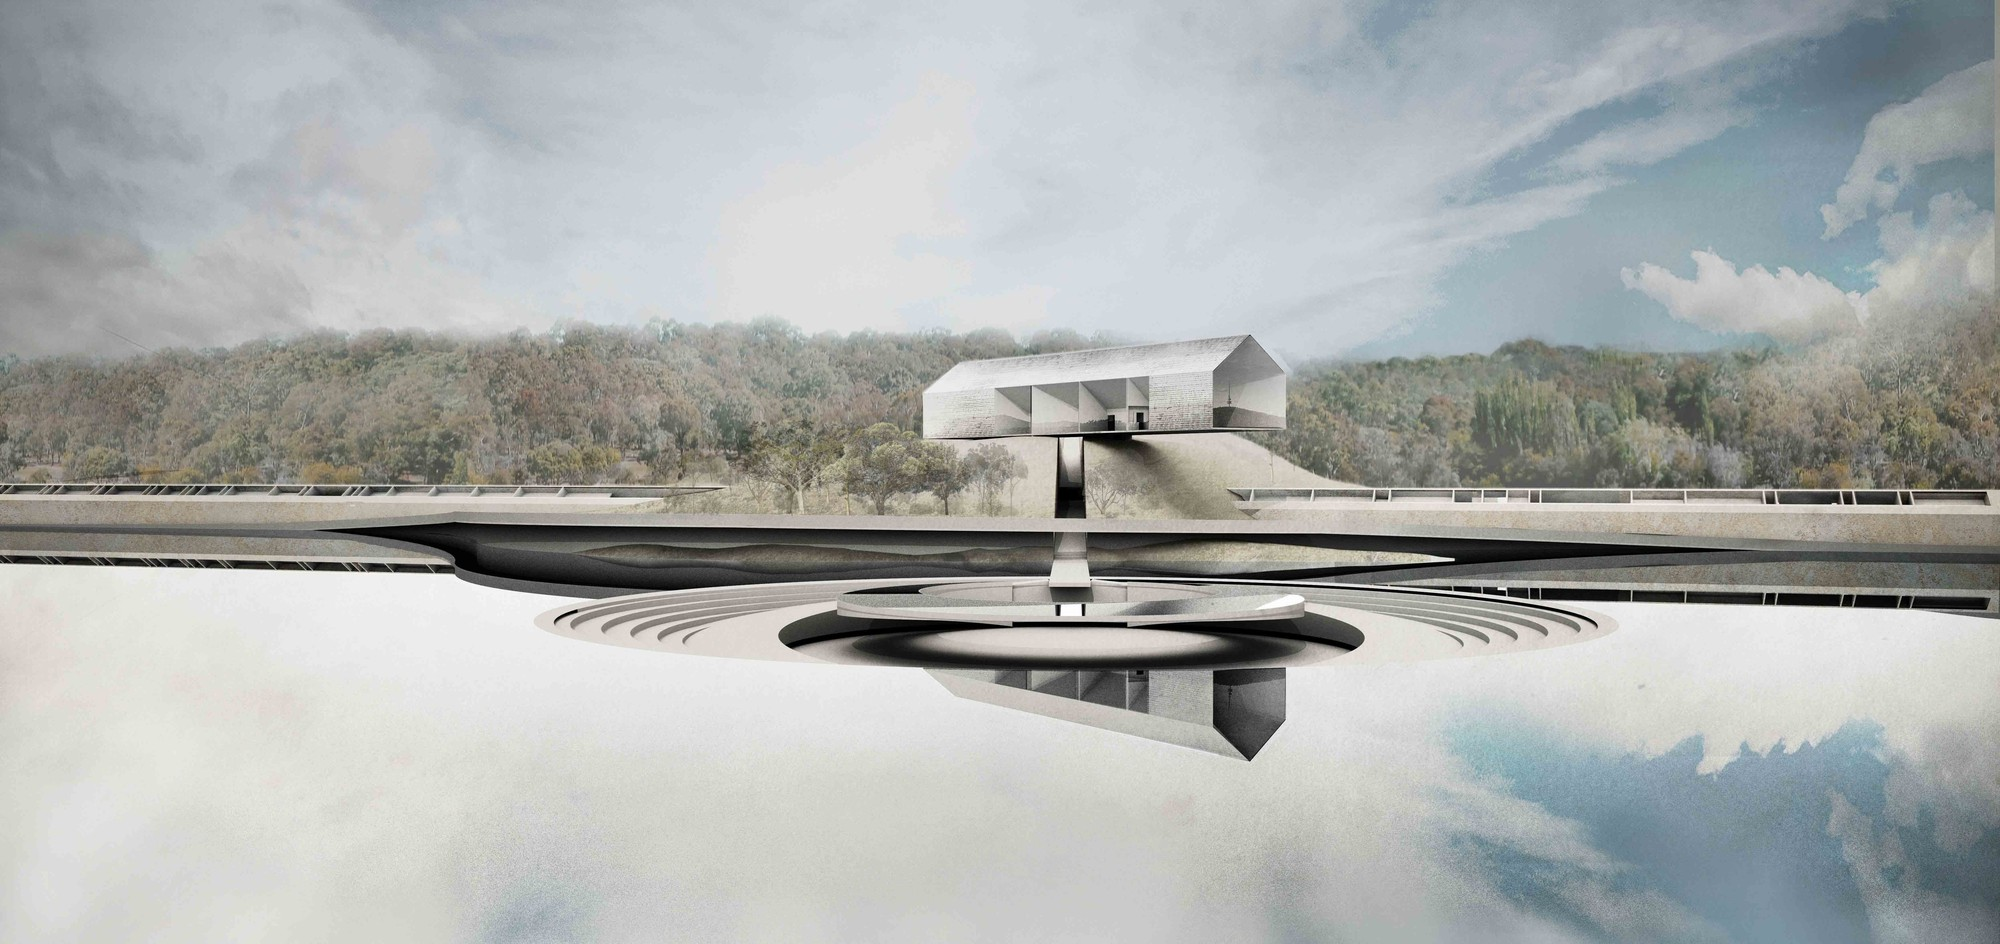 'The Lodge on the Lake' Competition Entry / Other Architects, Courtesy of Other Architects